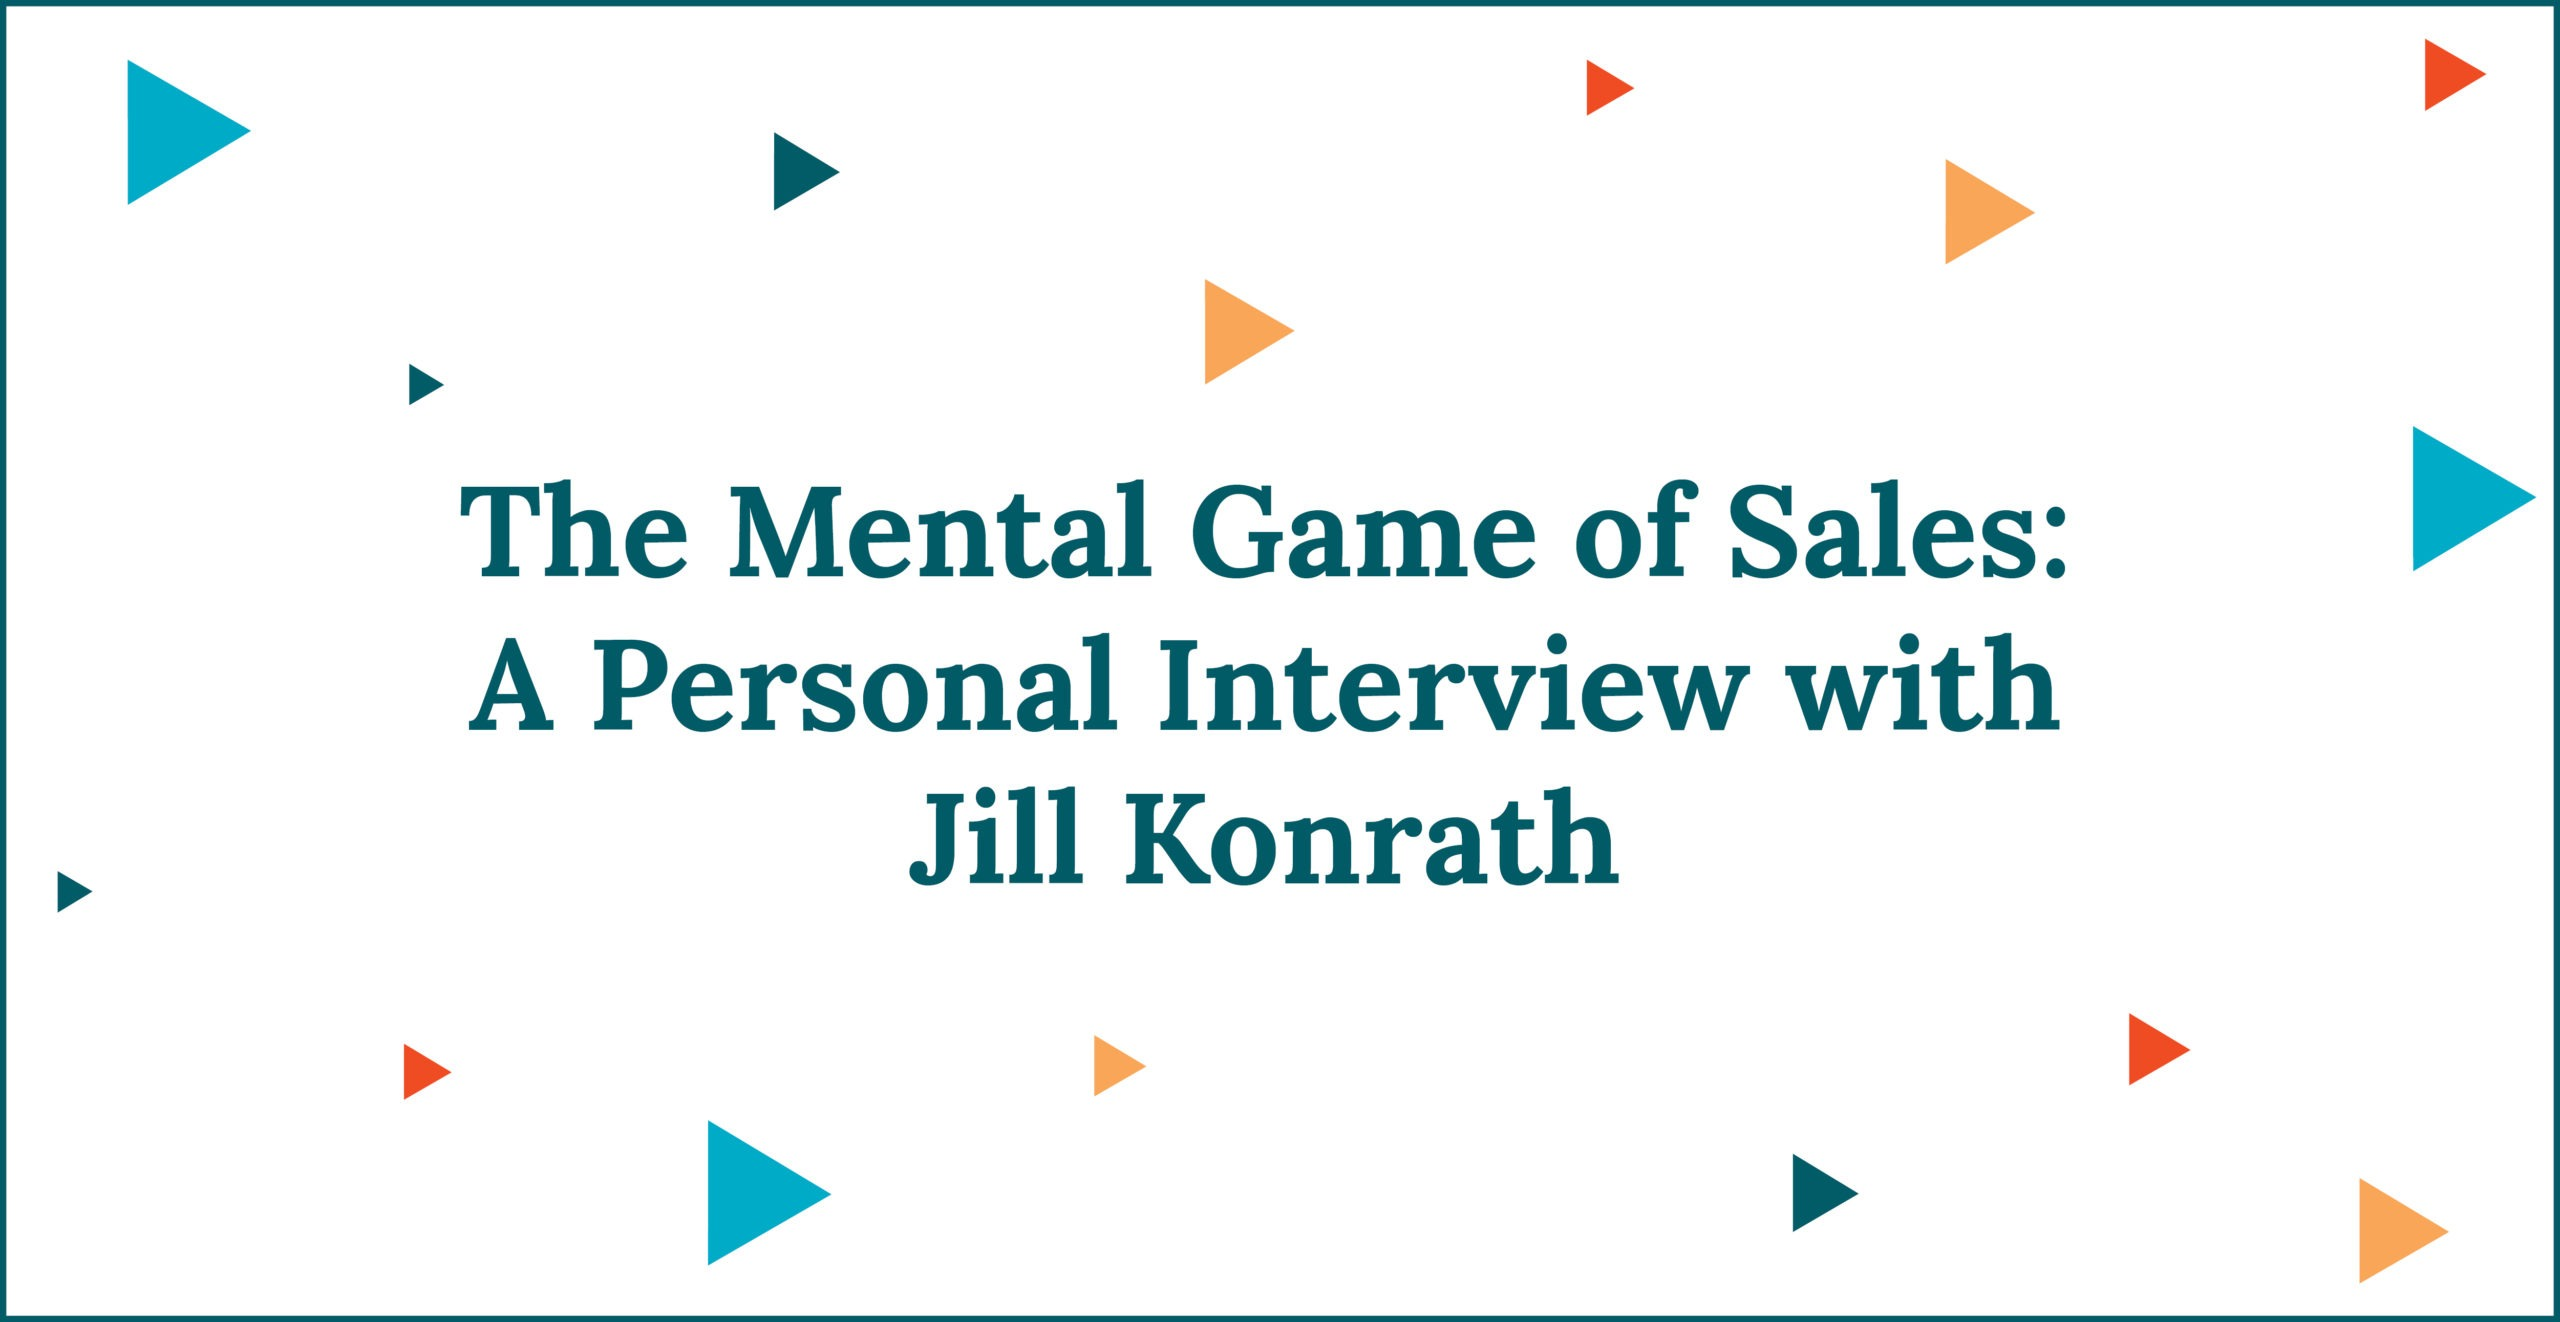 The Mental Game of Sales: A Personal Interview with Jill Konrath